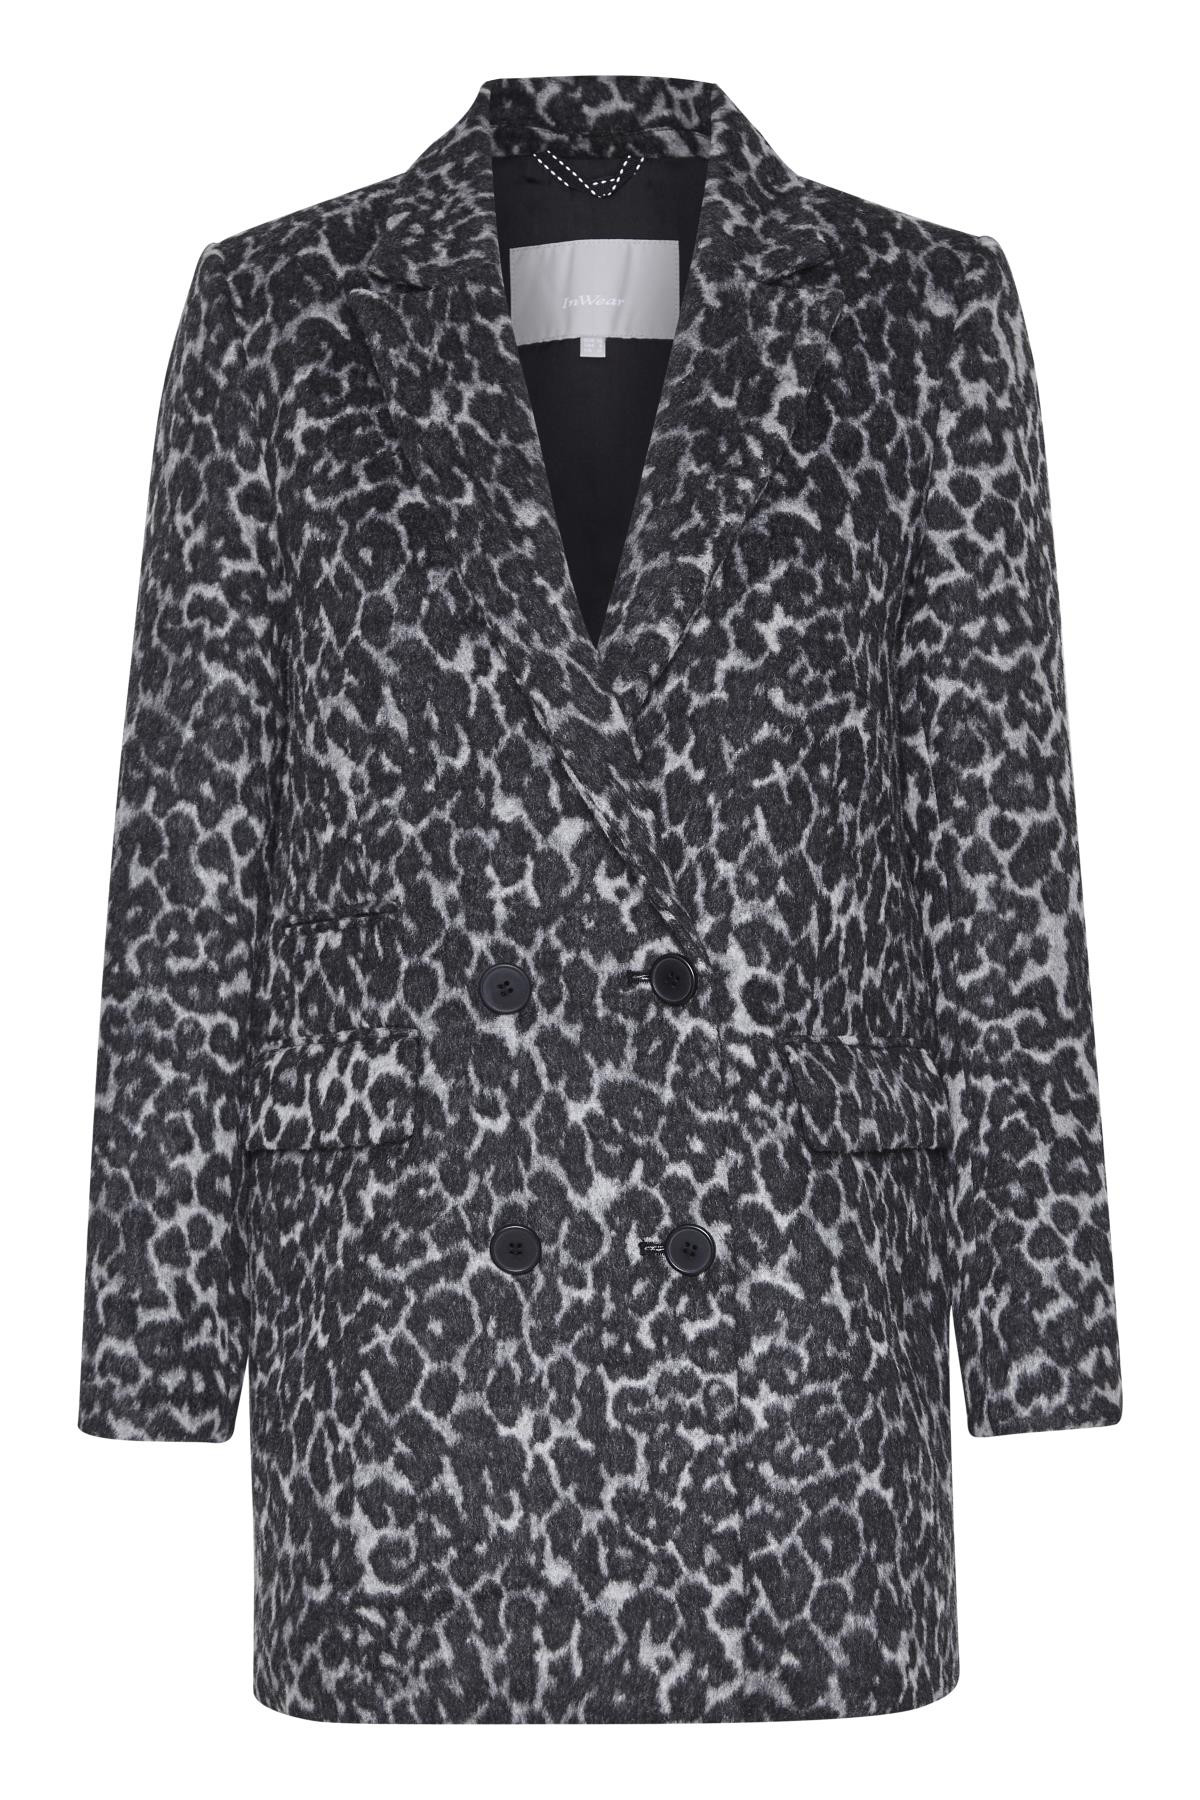 Image of   InWear GIOVANNA BLAZER 30103438 (Leopard Non-color 11367, 42)